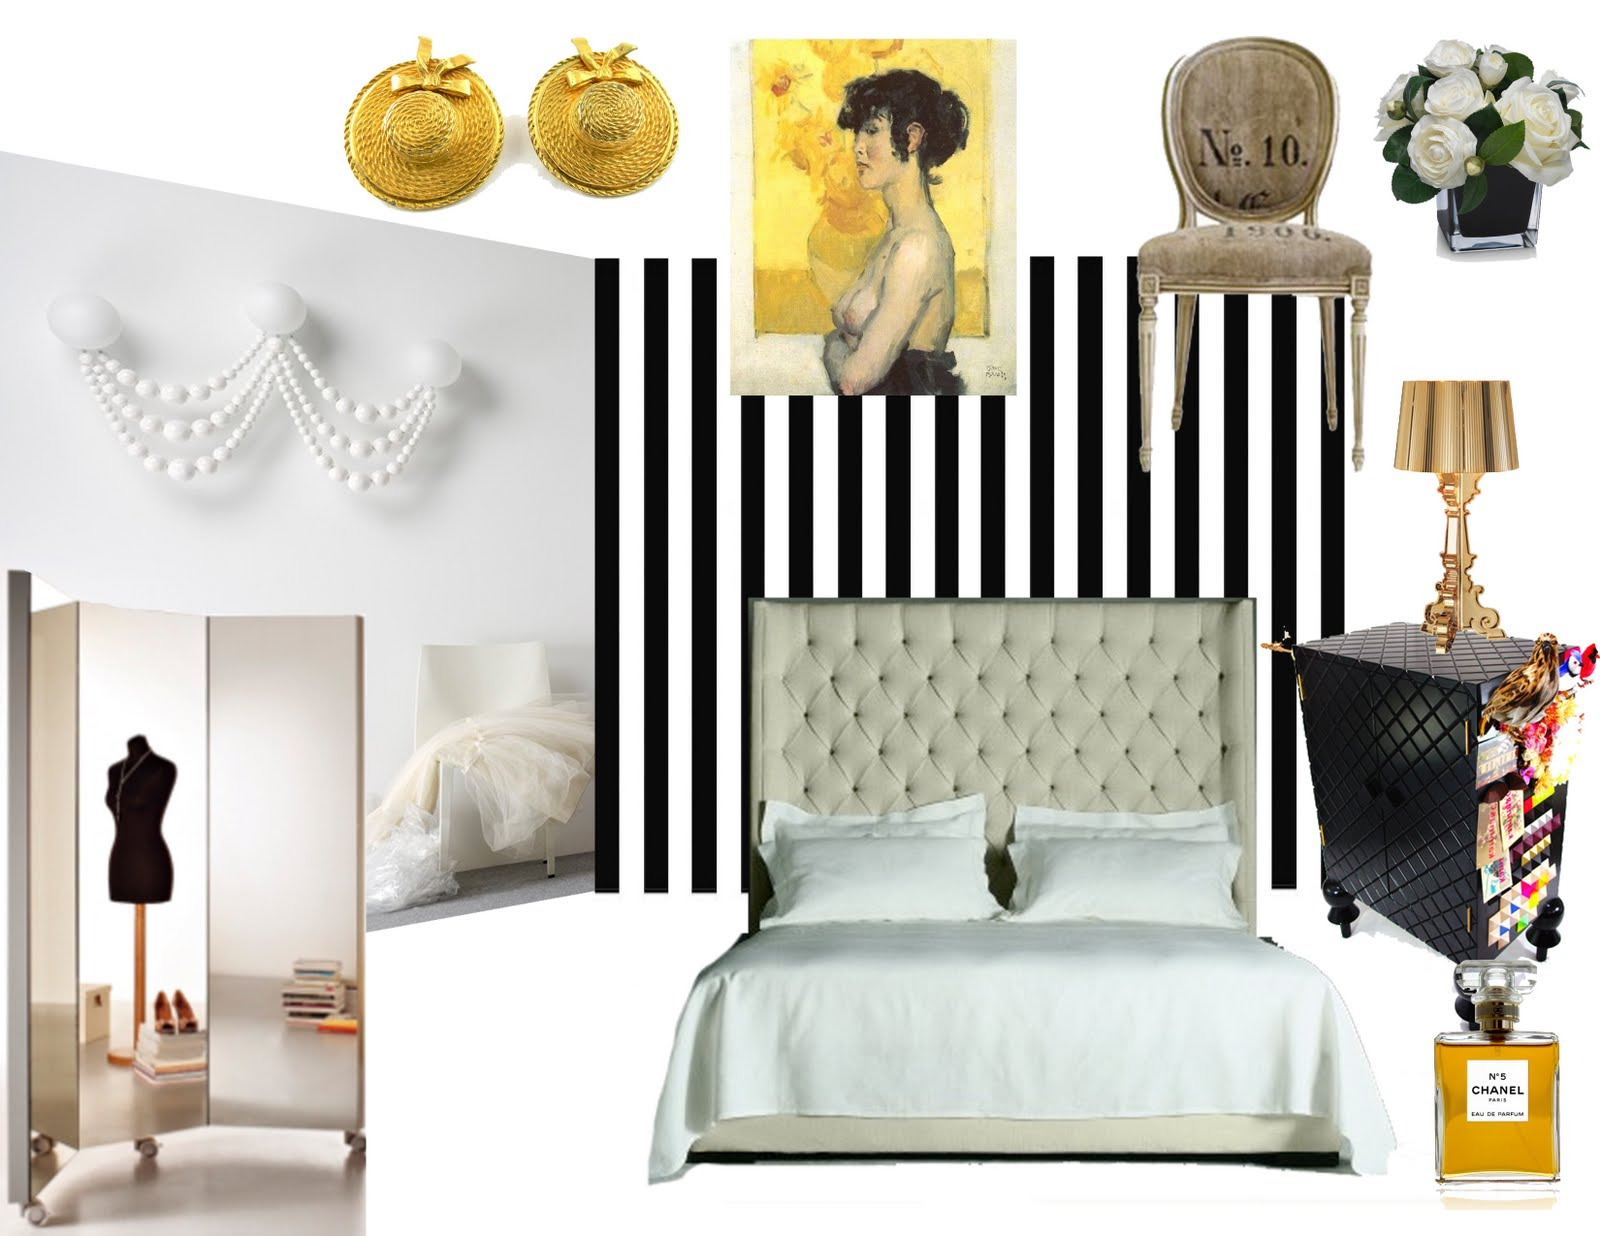 80 Best Images About Room In A Box On Pinterest: ROX IN A BOX